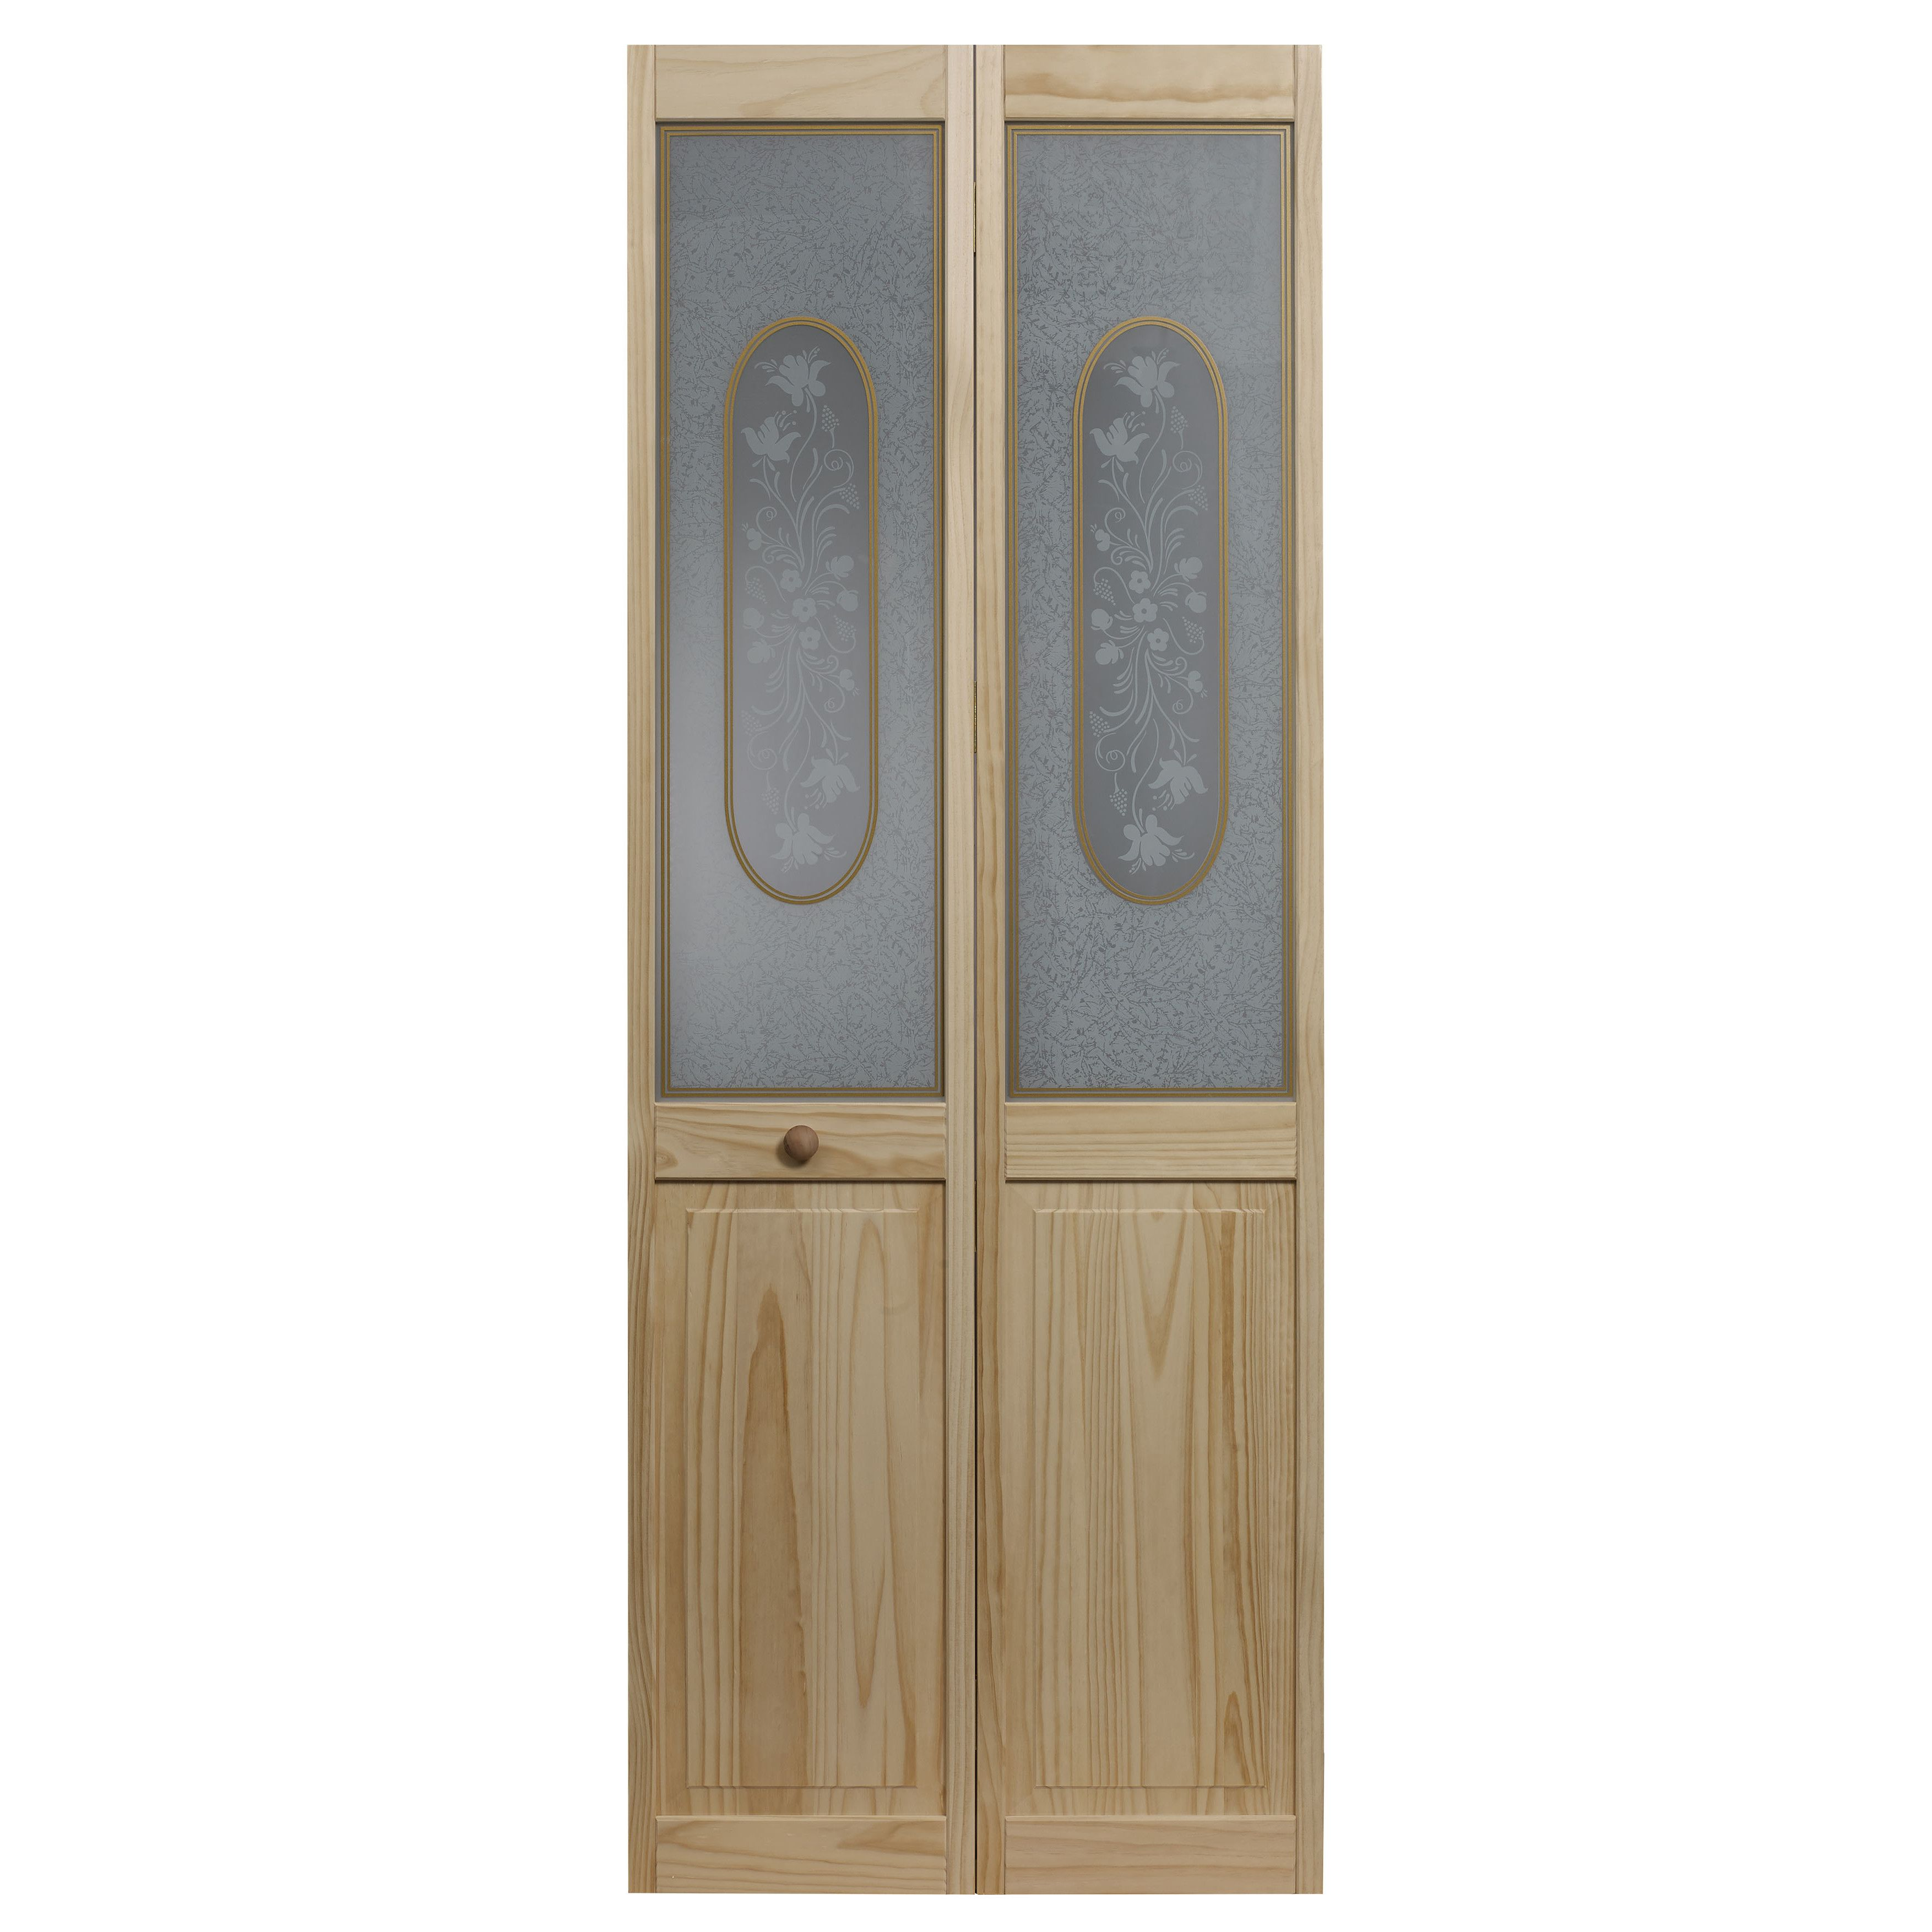 Features Bi Fold Door Tempered Safety Glass Traditional Look